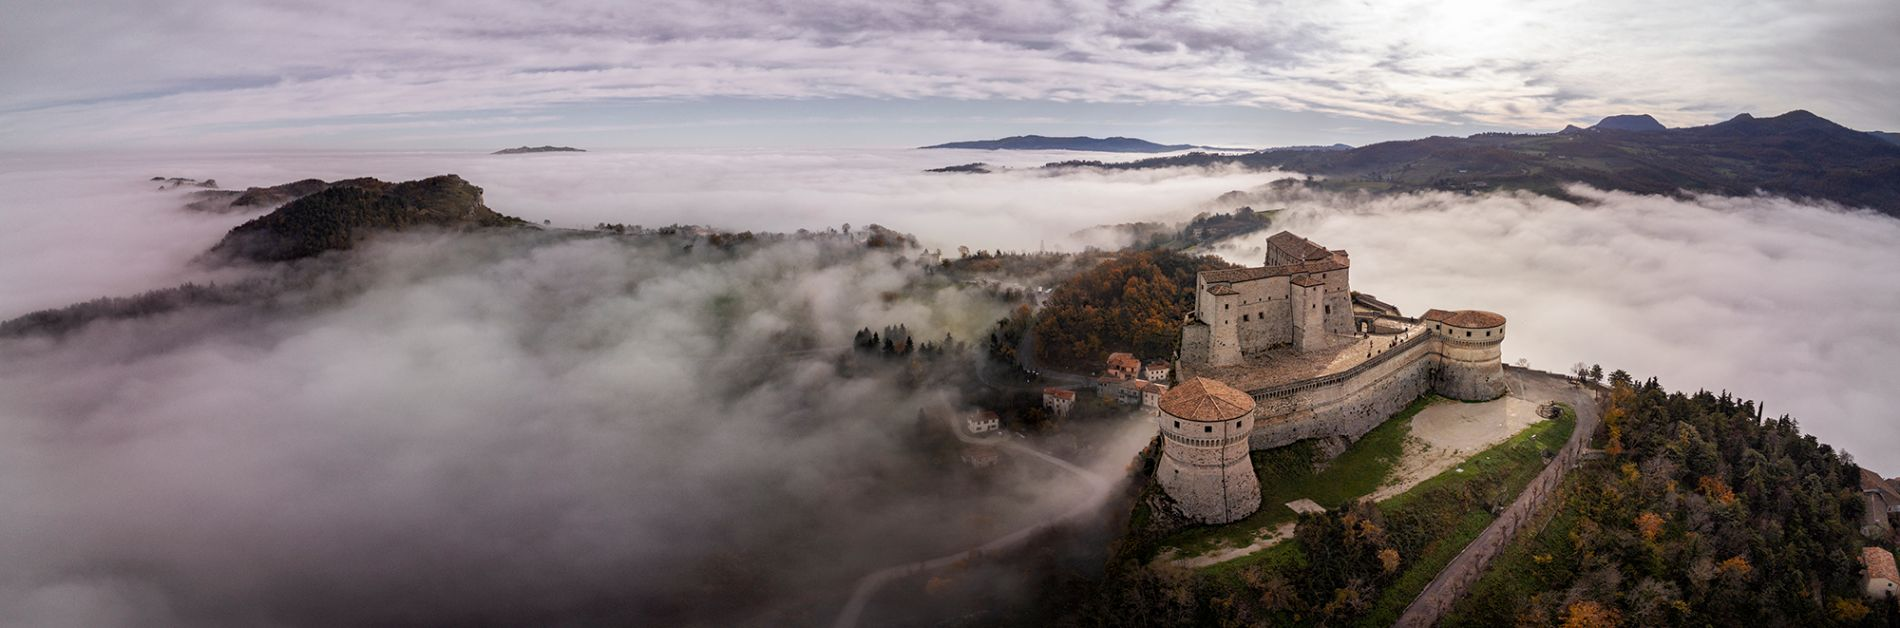 San Leo Castle in the clouds